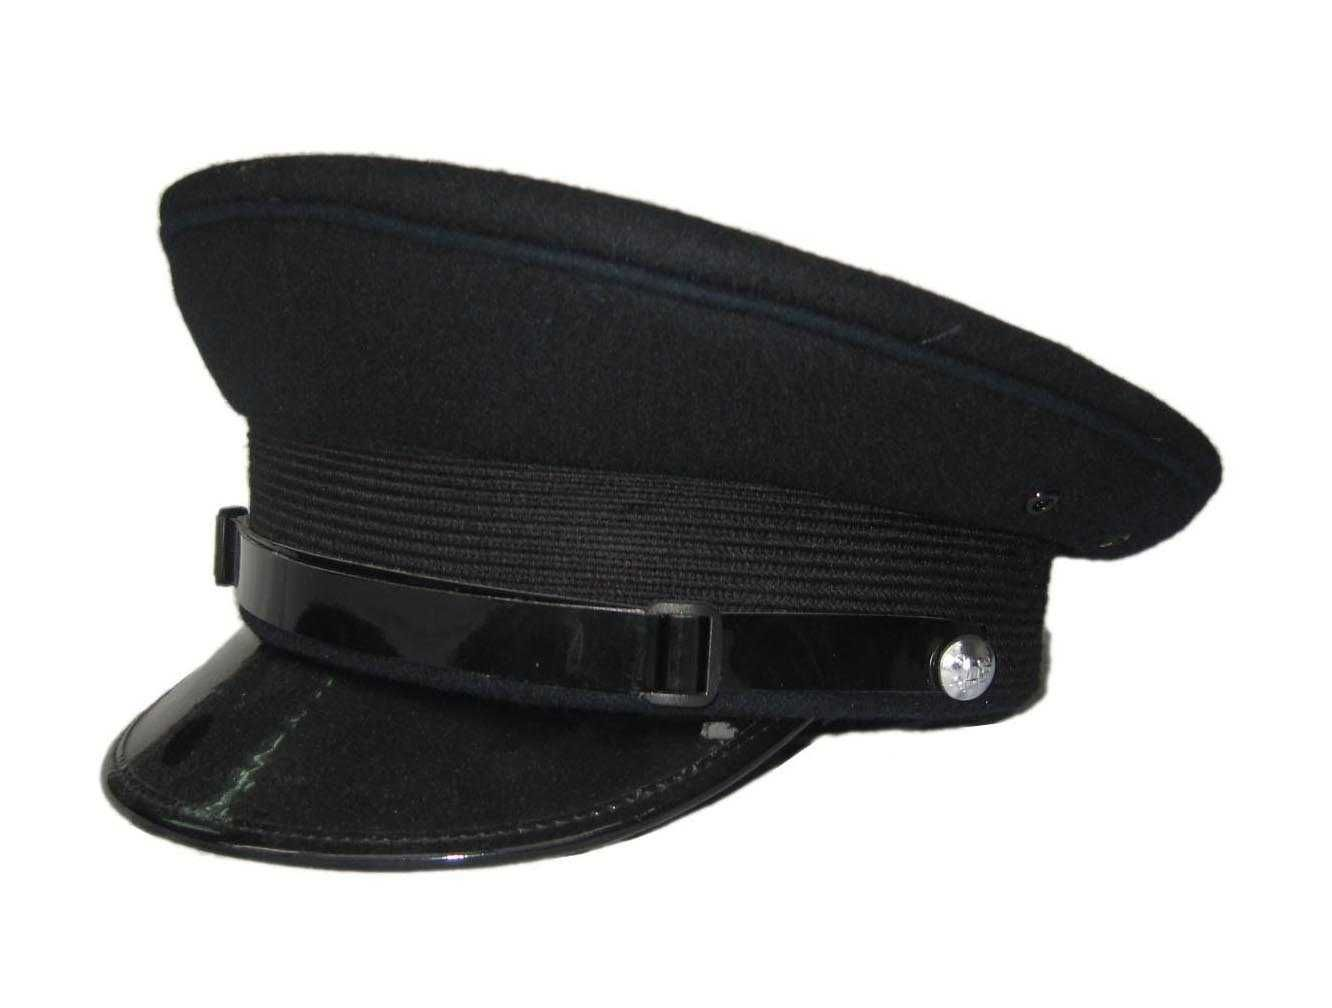 95e03da17d0 Police Caps Hats Military Cap SECURITY CAP ENGINE DRIVERS CAP